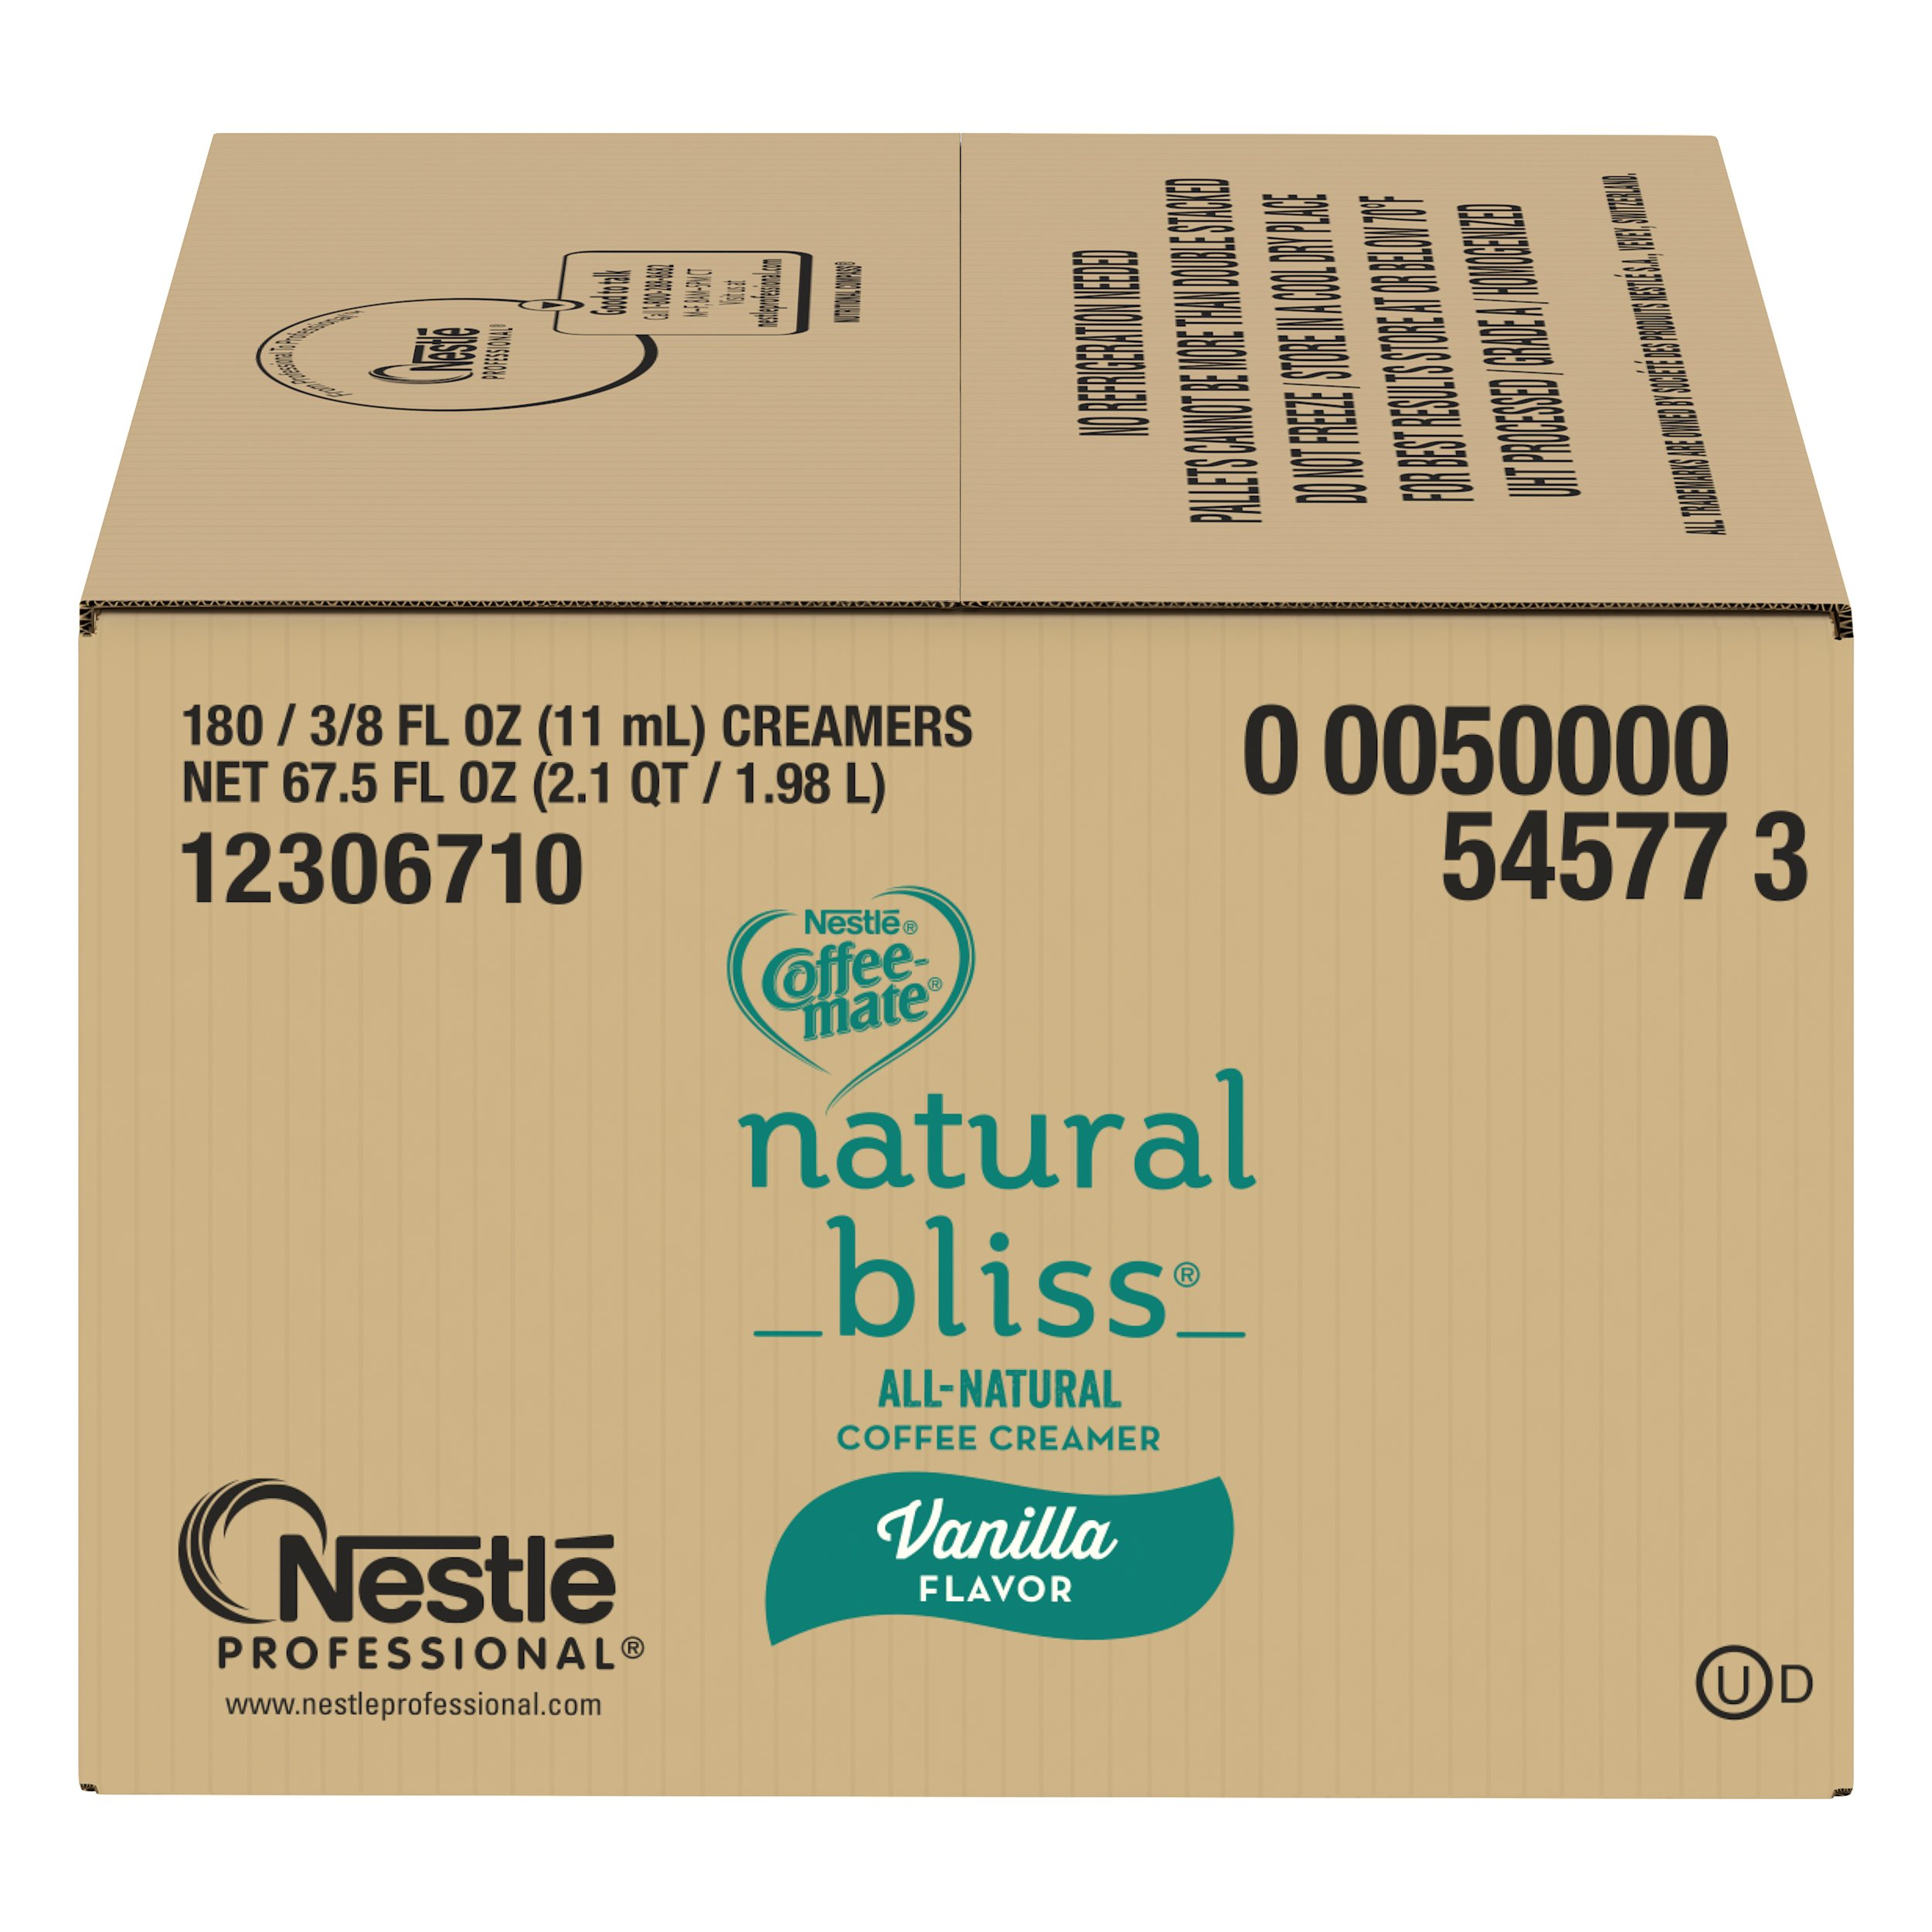 Nestle Coffee-mate Coffee Creamer, Natural Bliss, liquid creamer singles,180 Count (Pack of 1) by Nestle Coffee Mate (Image #6)